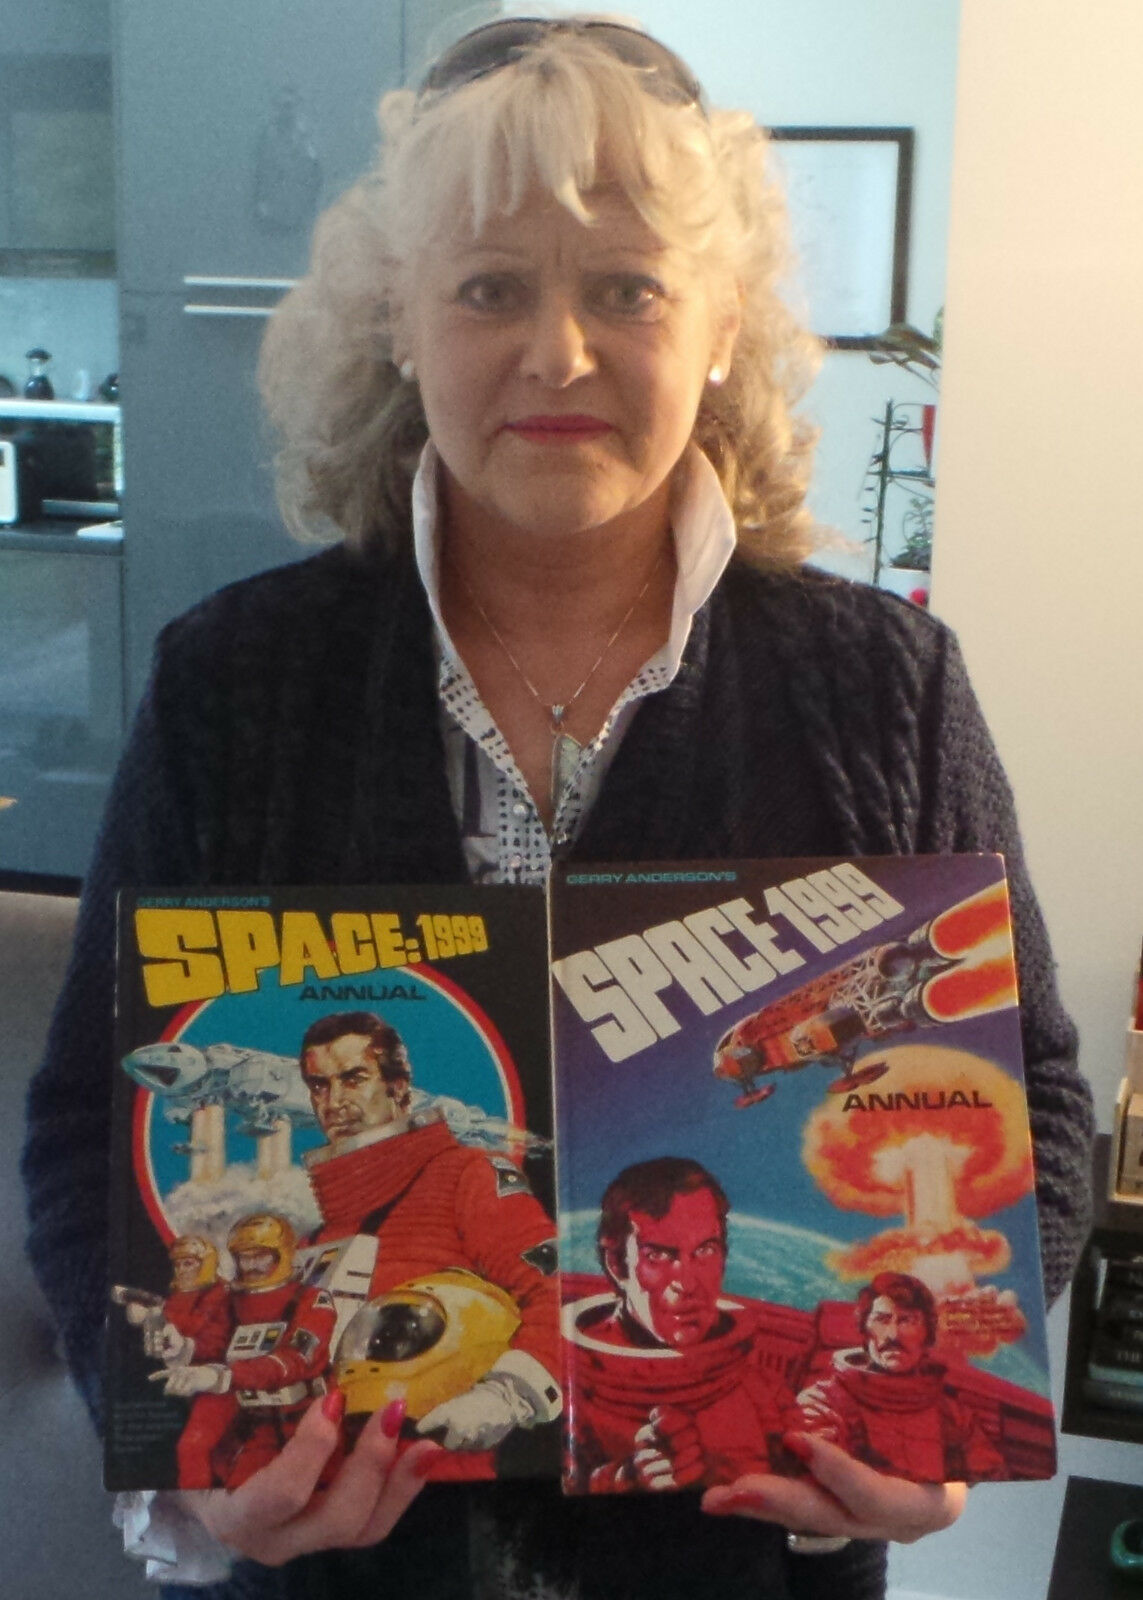 SPACE 1999 : 2 X SPACE 1999 ANNUALS SIGNED BY PAM ROSE ACTRESS FROM THE SHOW